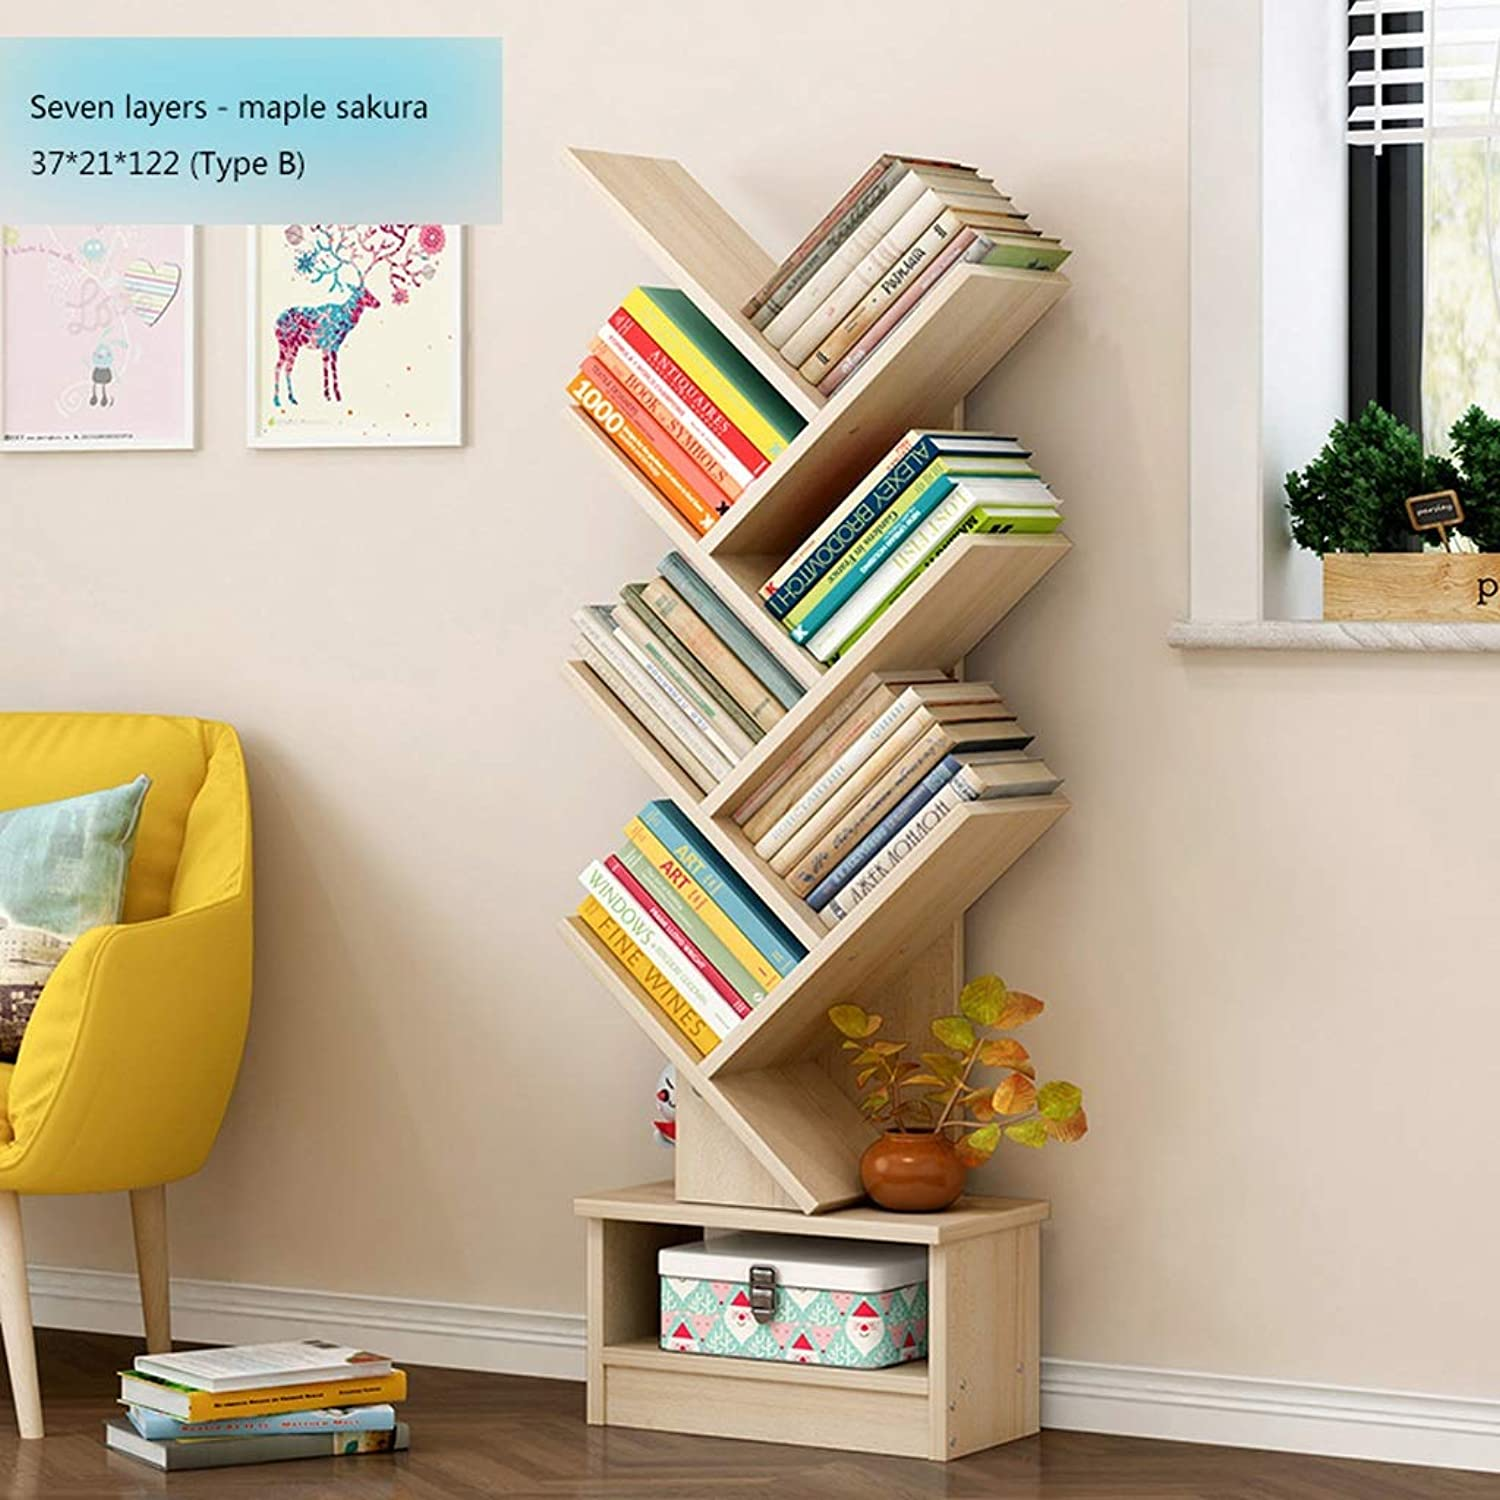 Bookcases Bookcase 7-Shelf with Open Cubes and Shelves Multi-Function Storage Shelves for Living Room Living Room 37  21  122cm (color   C)